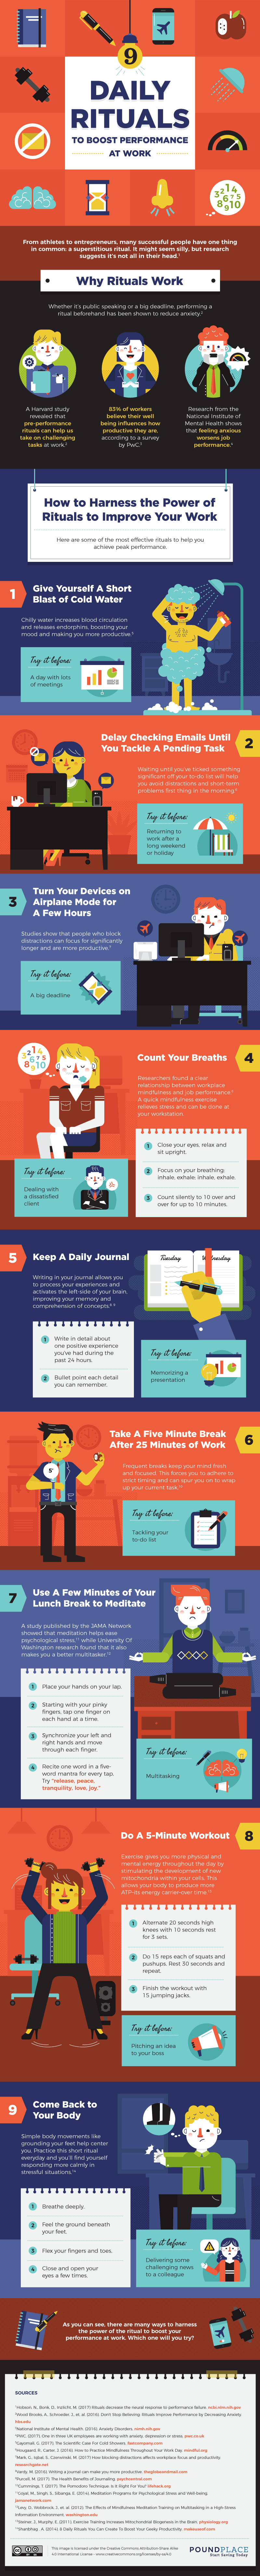 Do you use daily rituals? Incorporating these habits helps you face the day's challenges. Try a few of the 9 daily rituals on this infographic!